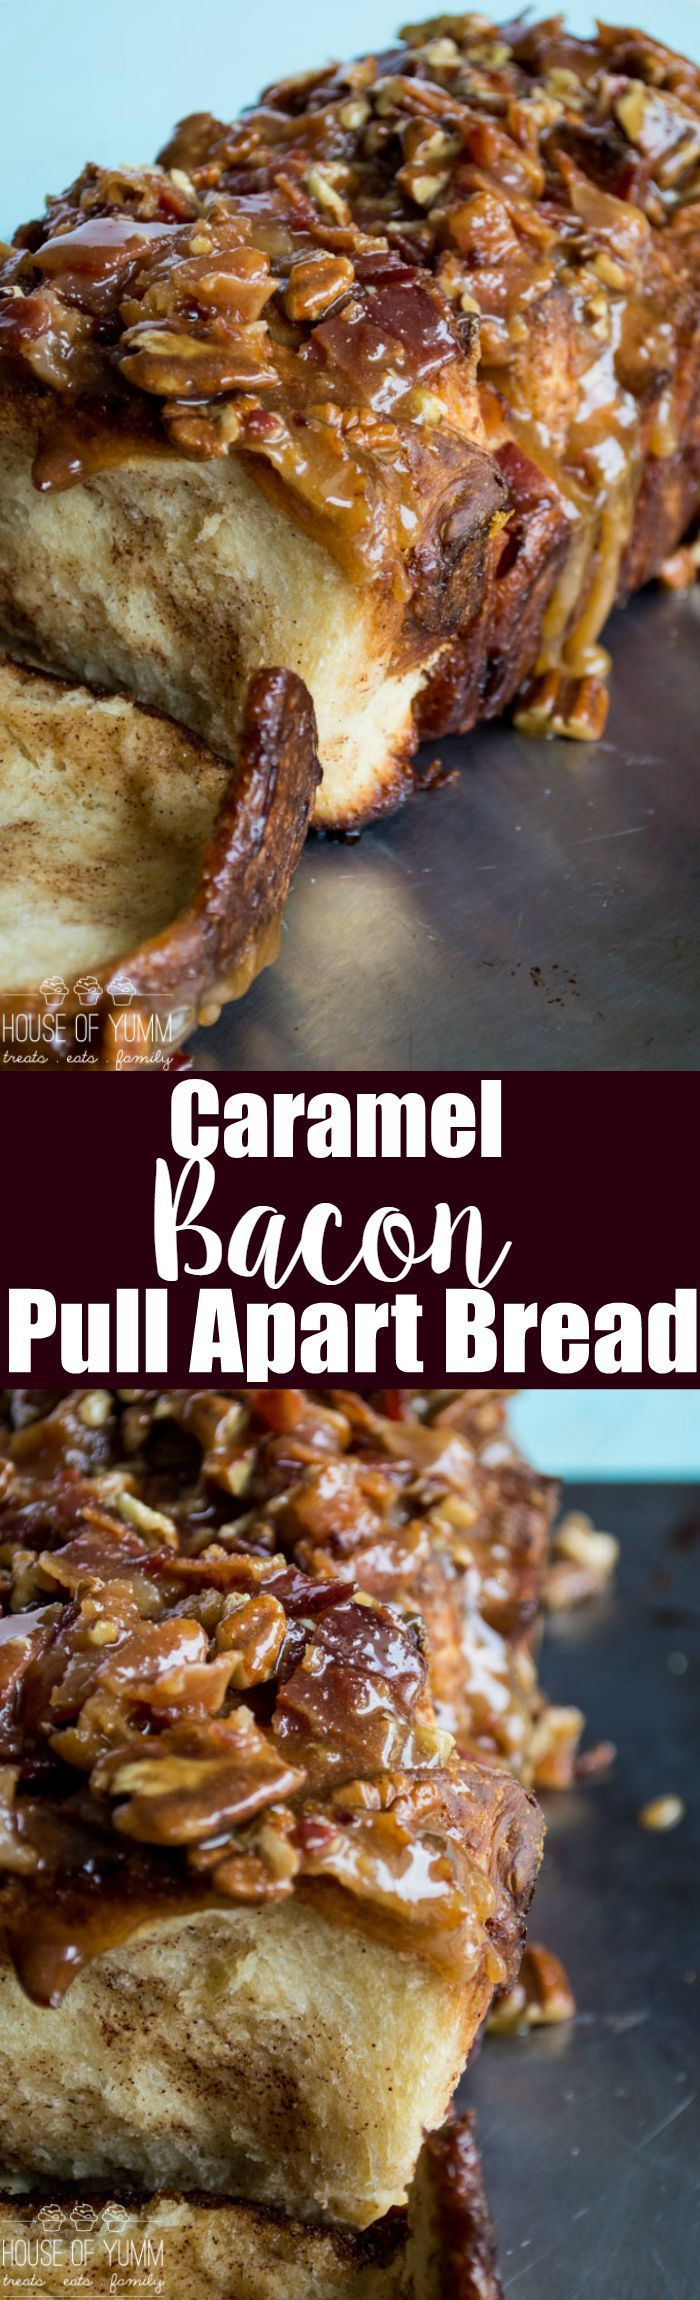 Caramel Bacon Pull Apart Bread. The ULTIMATE pull apart bread recipe!  Soft cinnamon bread topped with a rich, thick bacon pecan caramel.  This was DEVOURED!